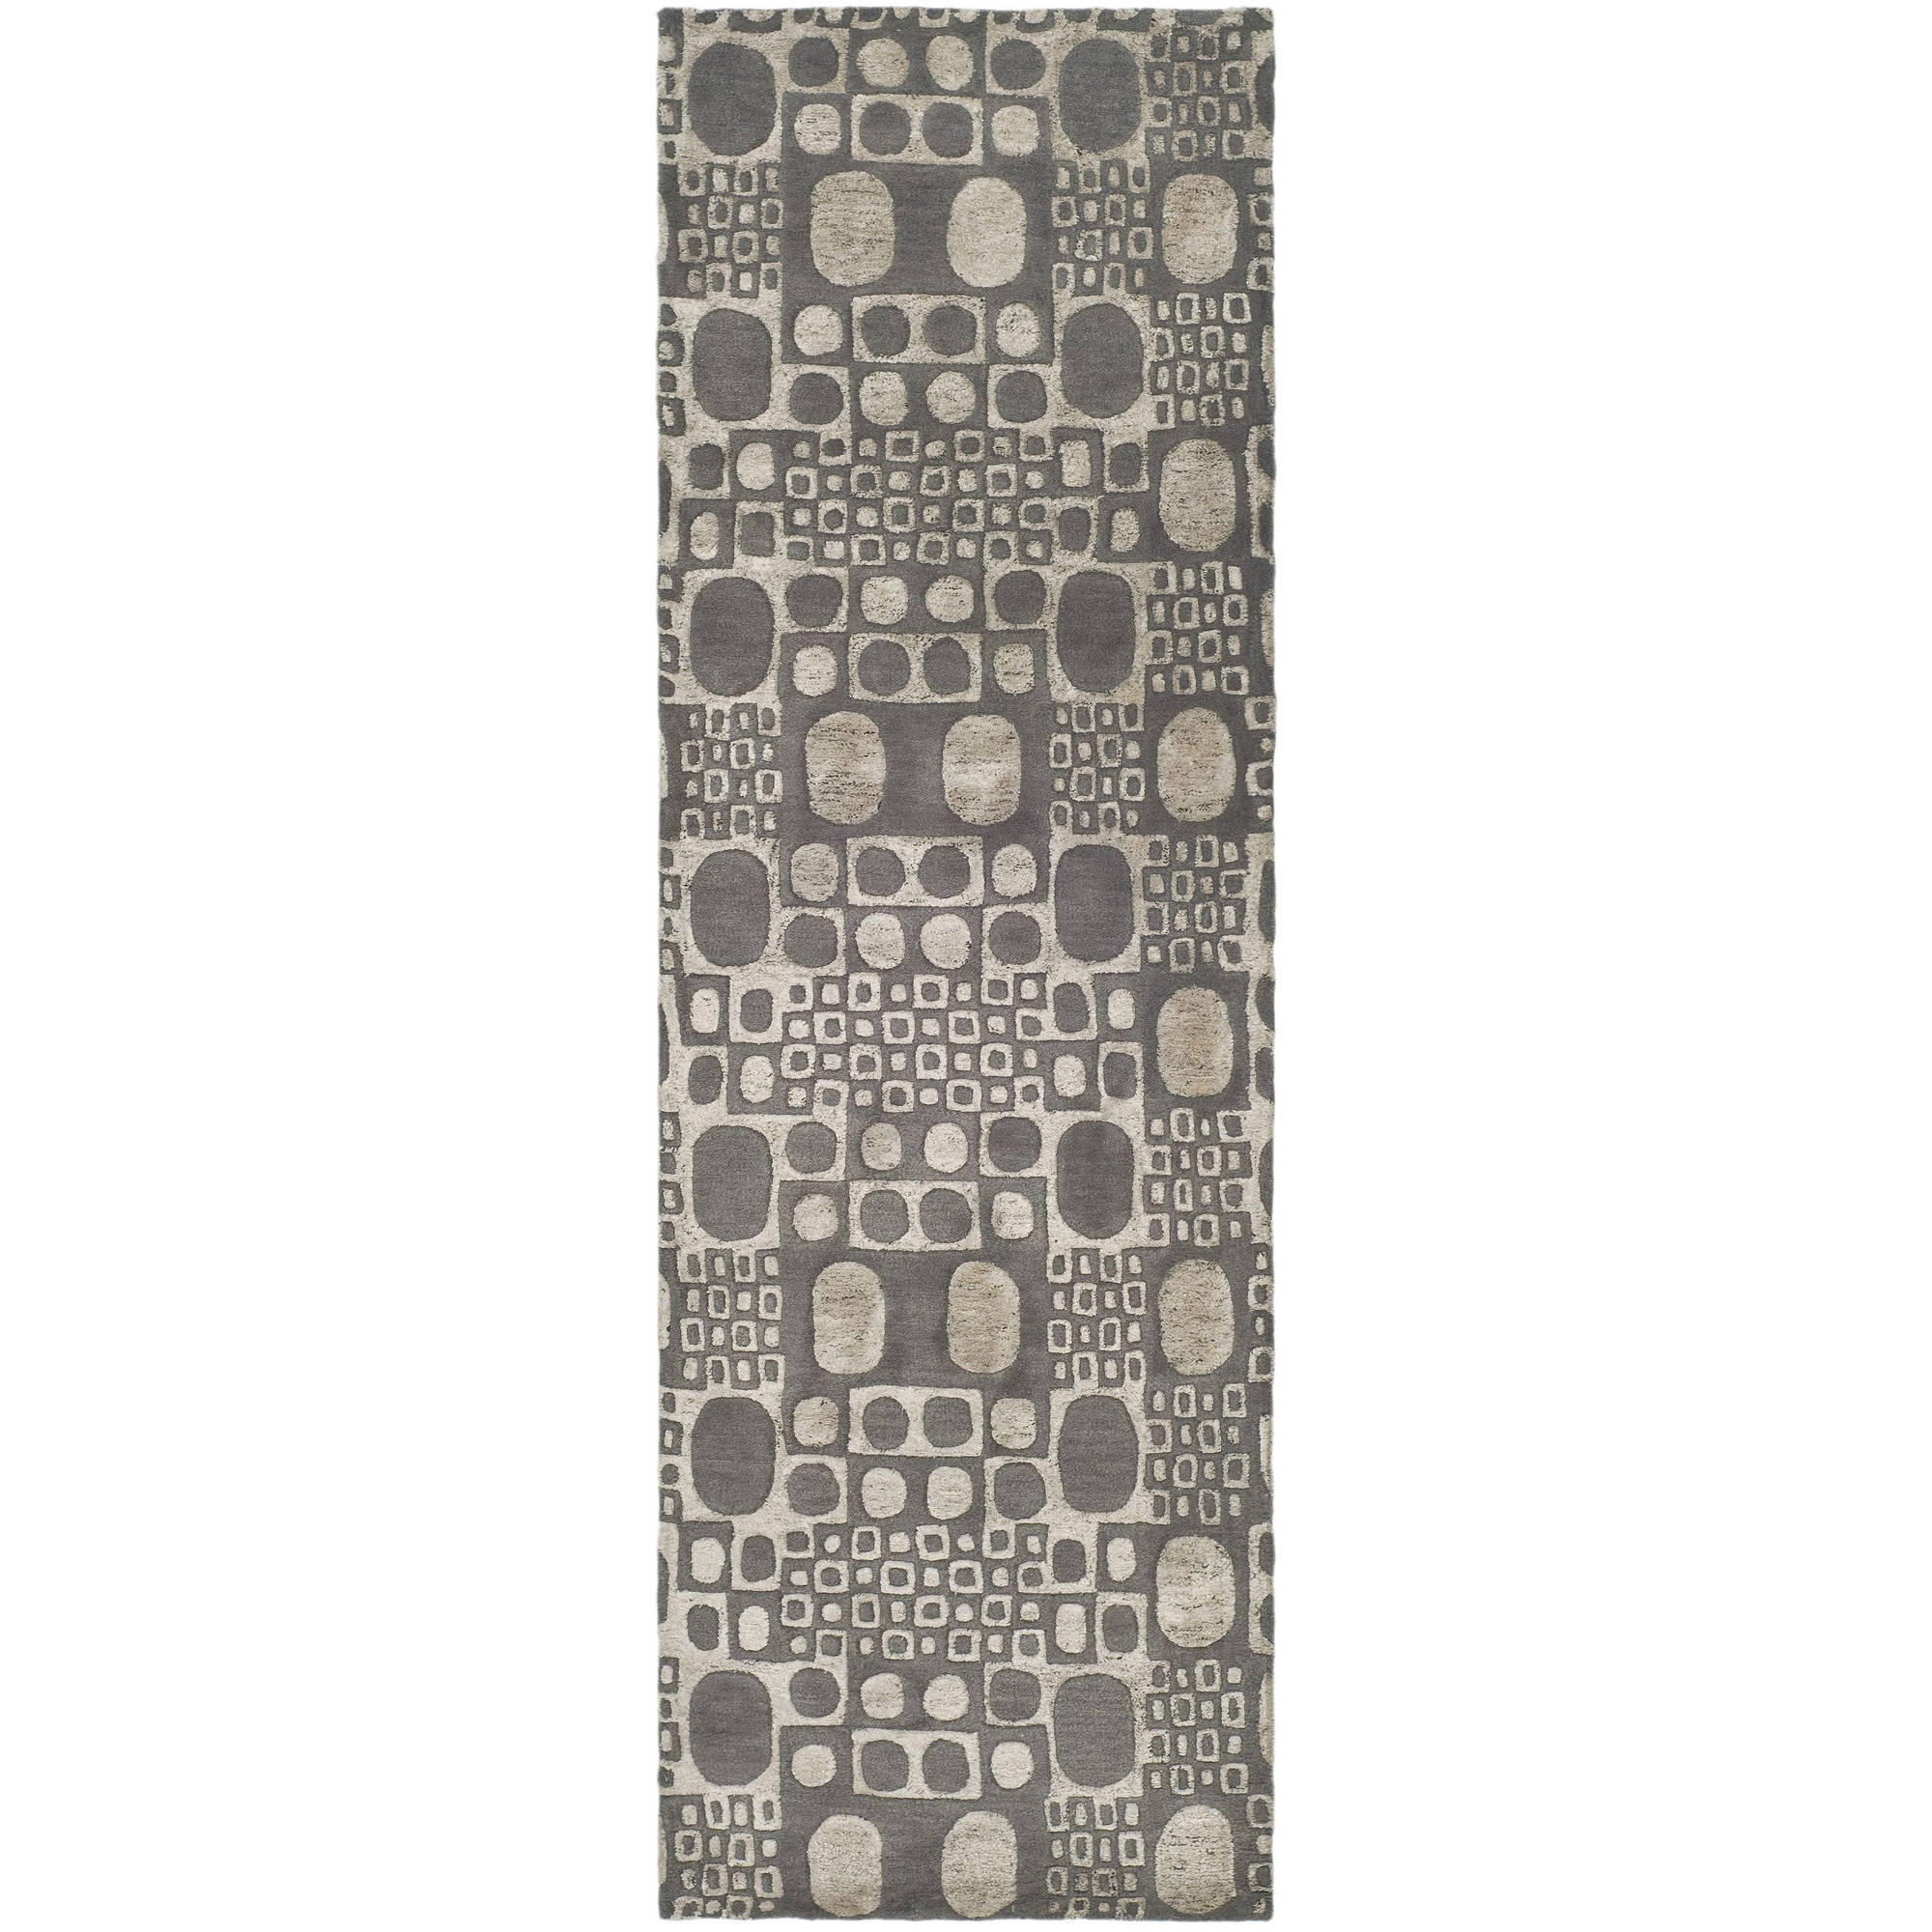 Safavieh Soho Gabi Wool Runner Rug, Grey, 2.5' x 8'